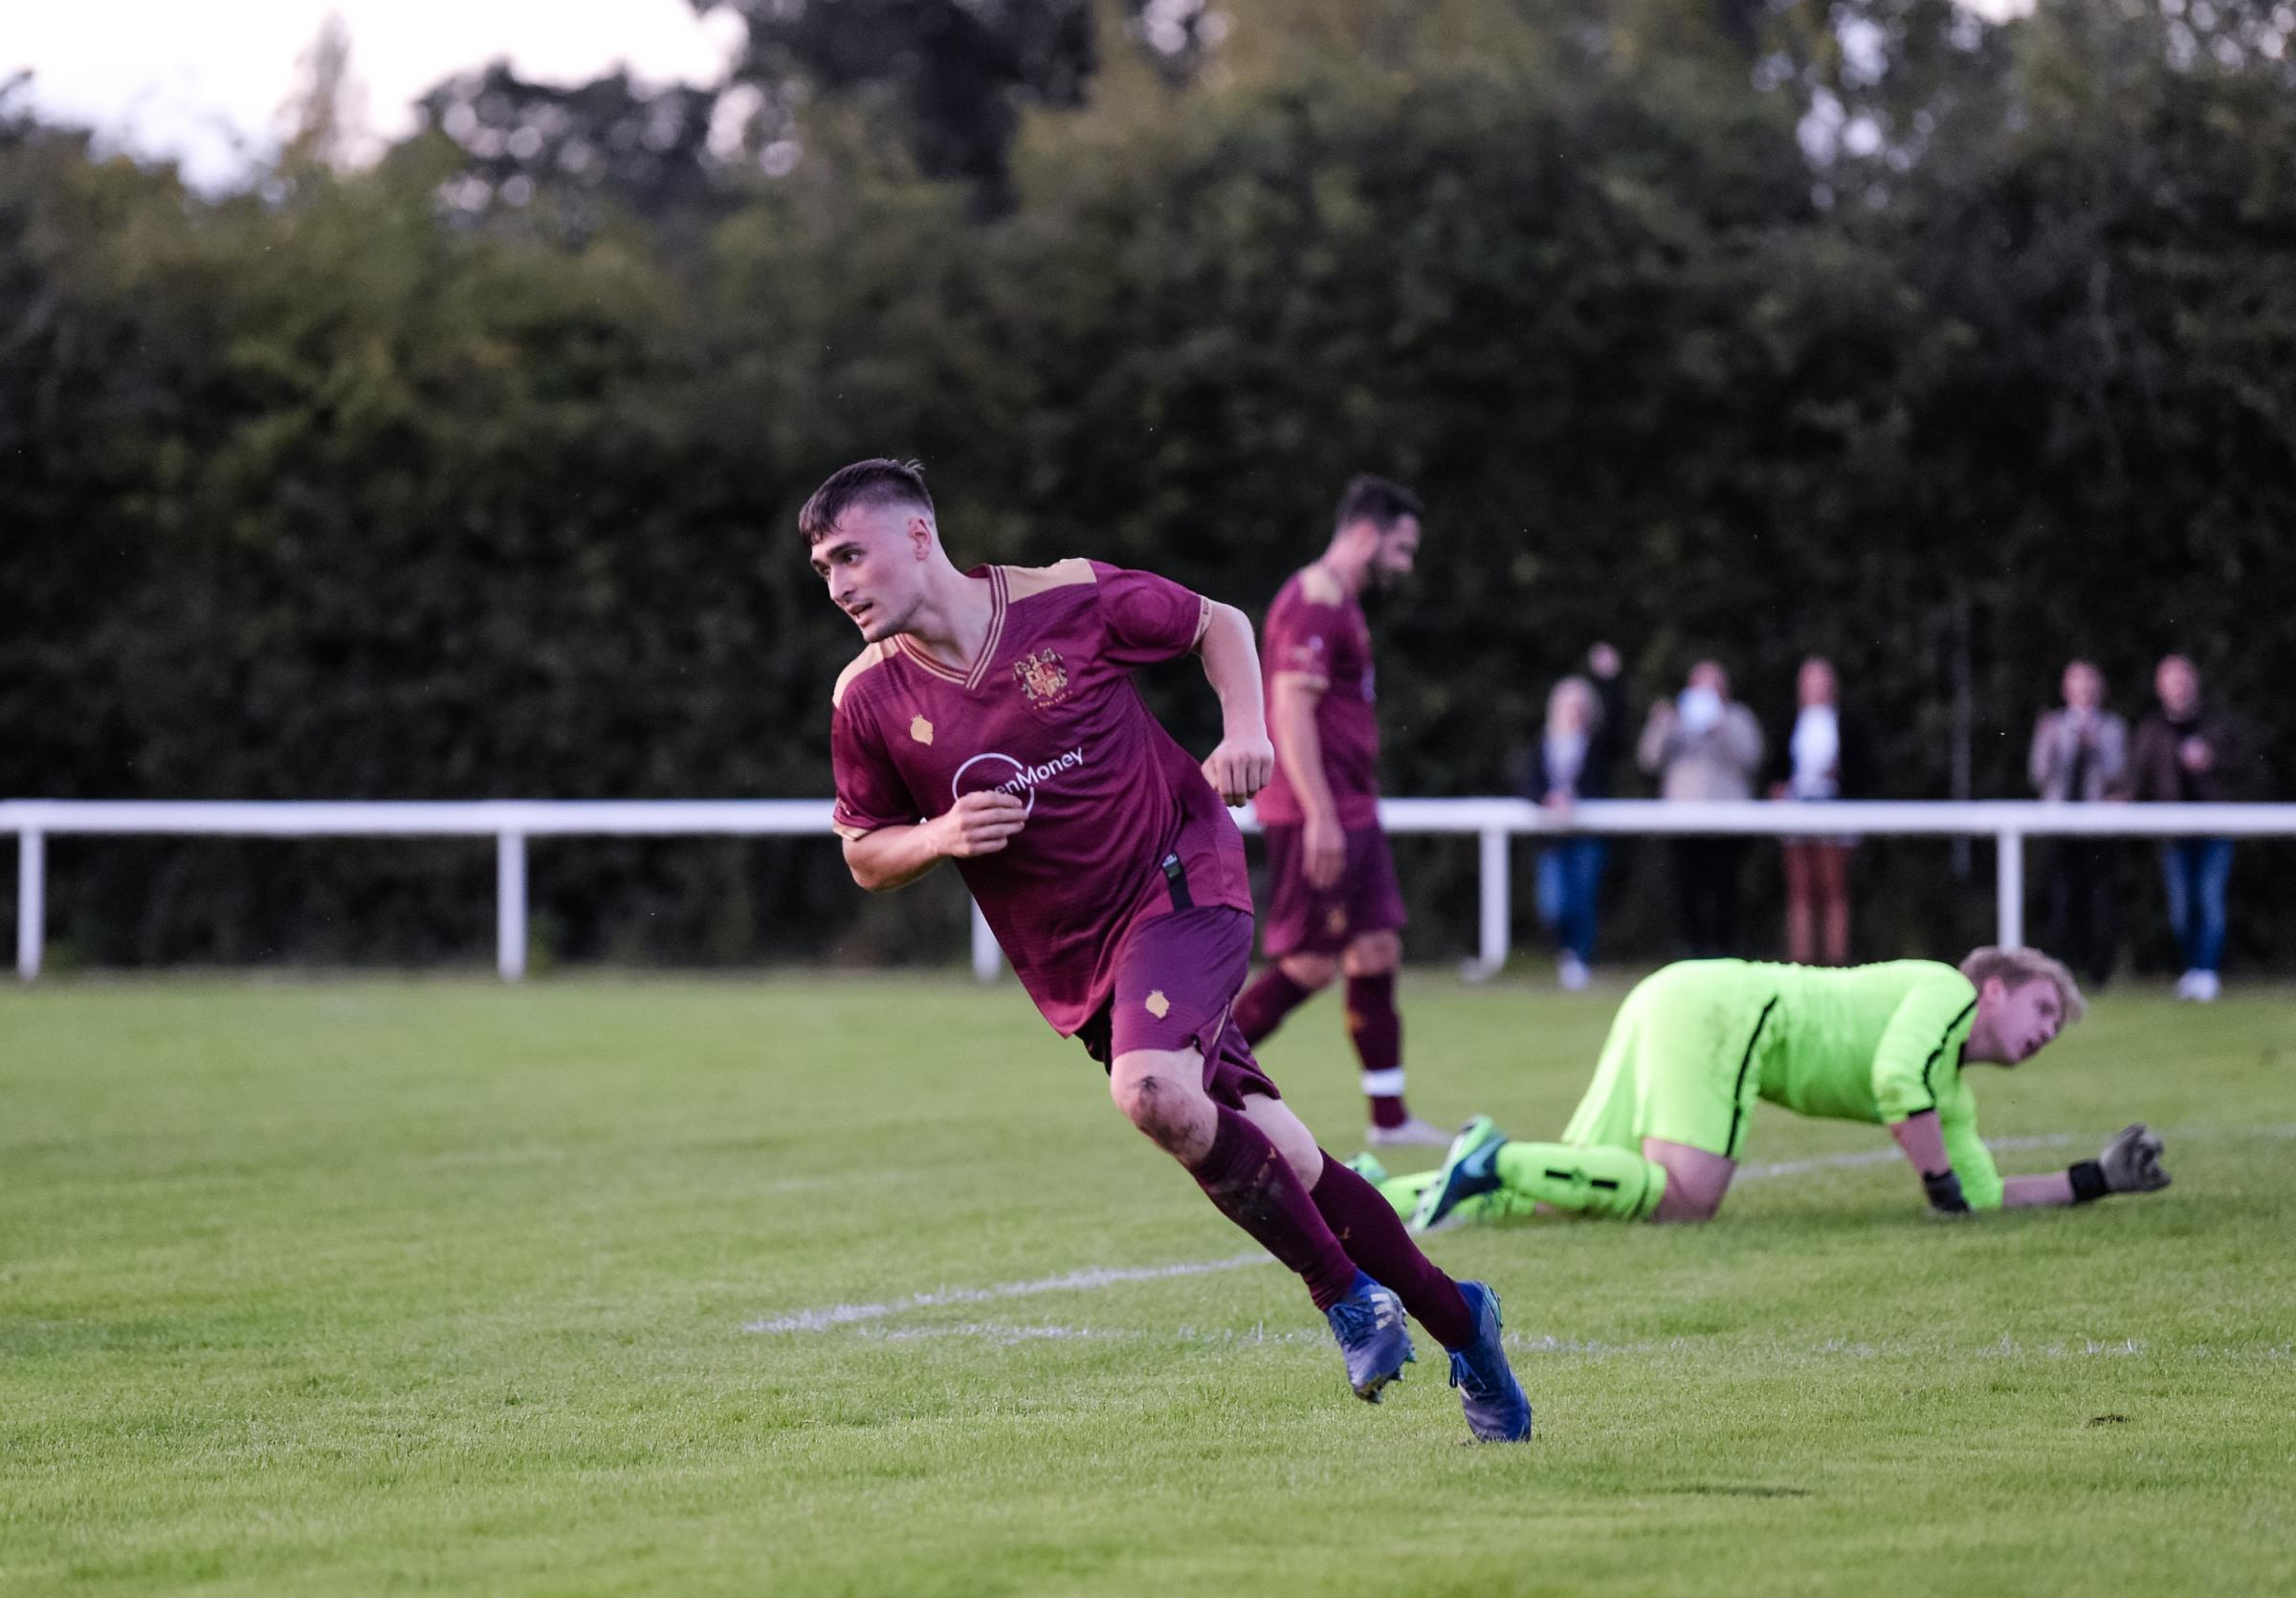 Bury AFC get off to winning start in their first-ever fixture